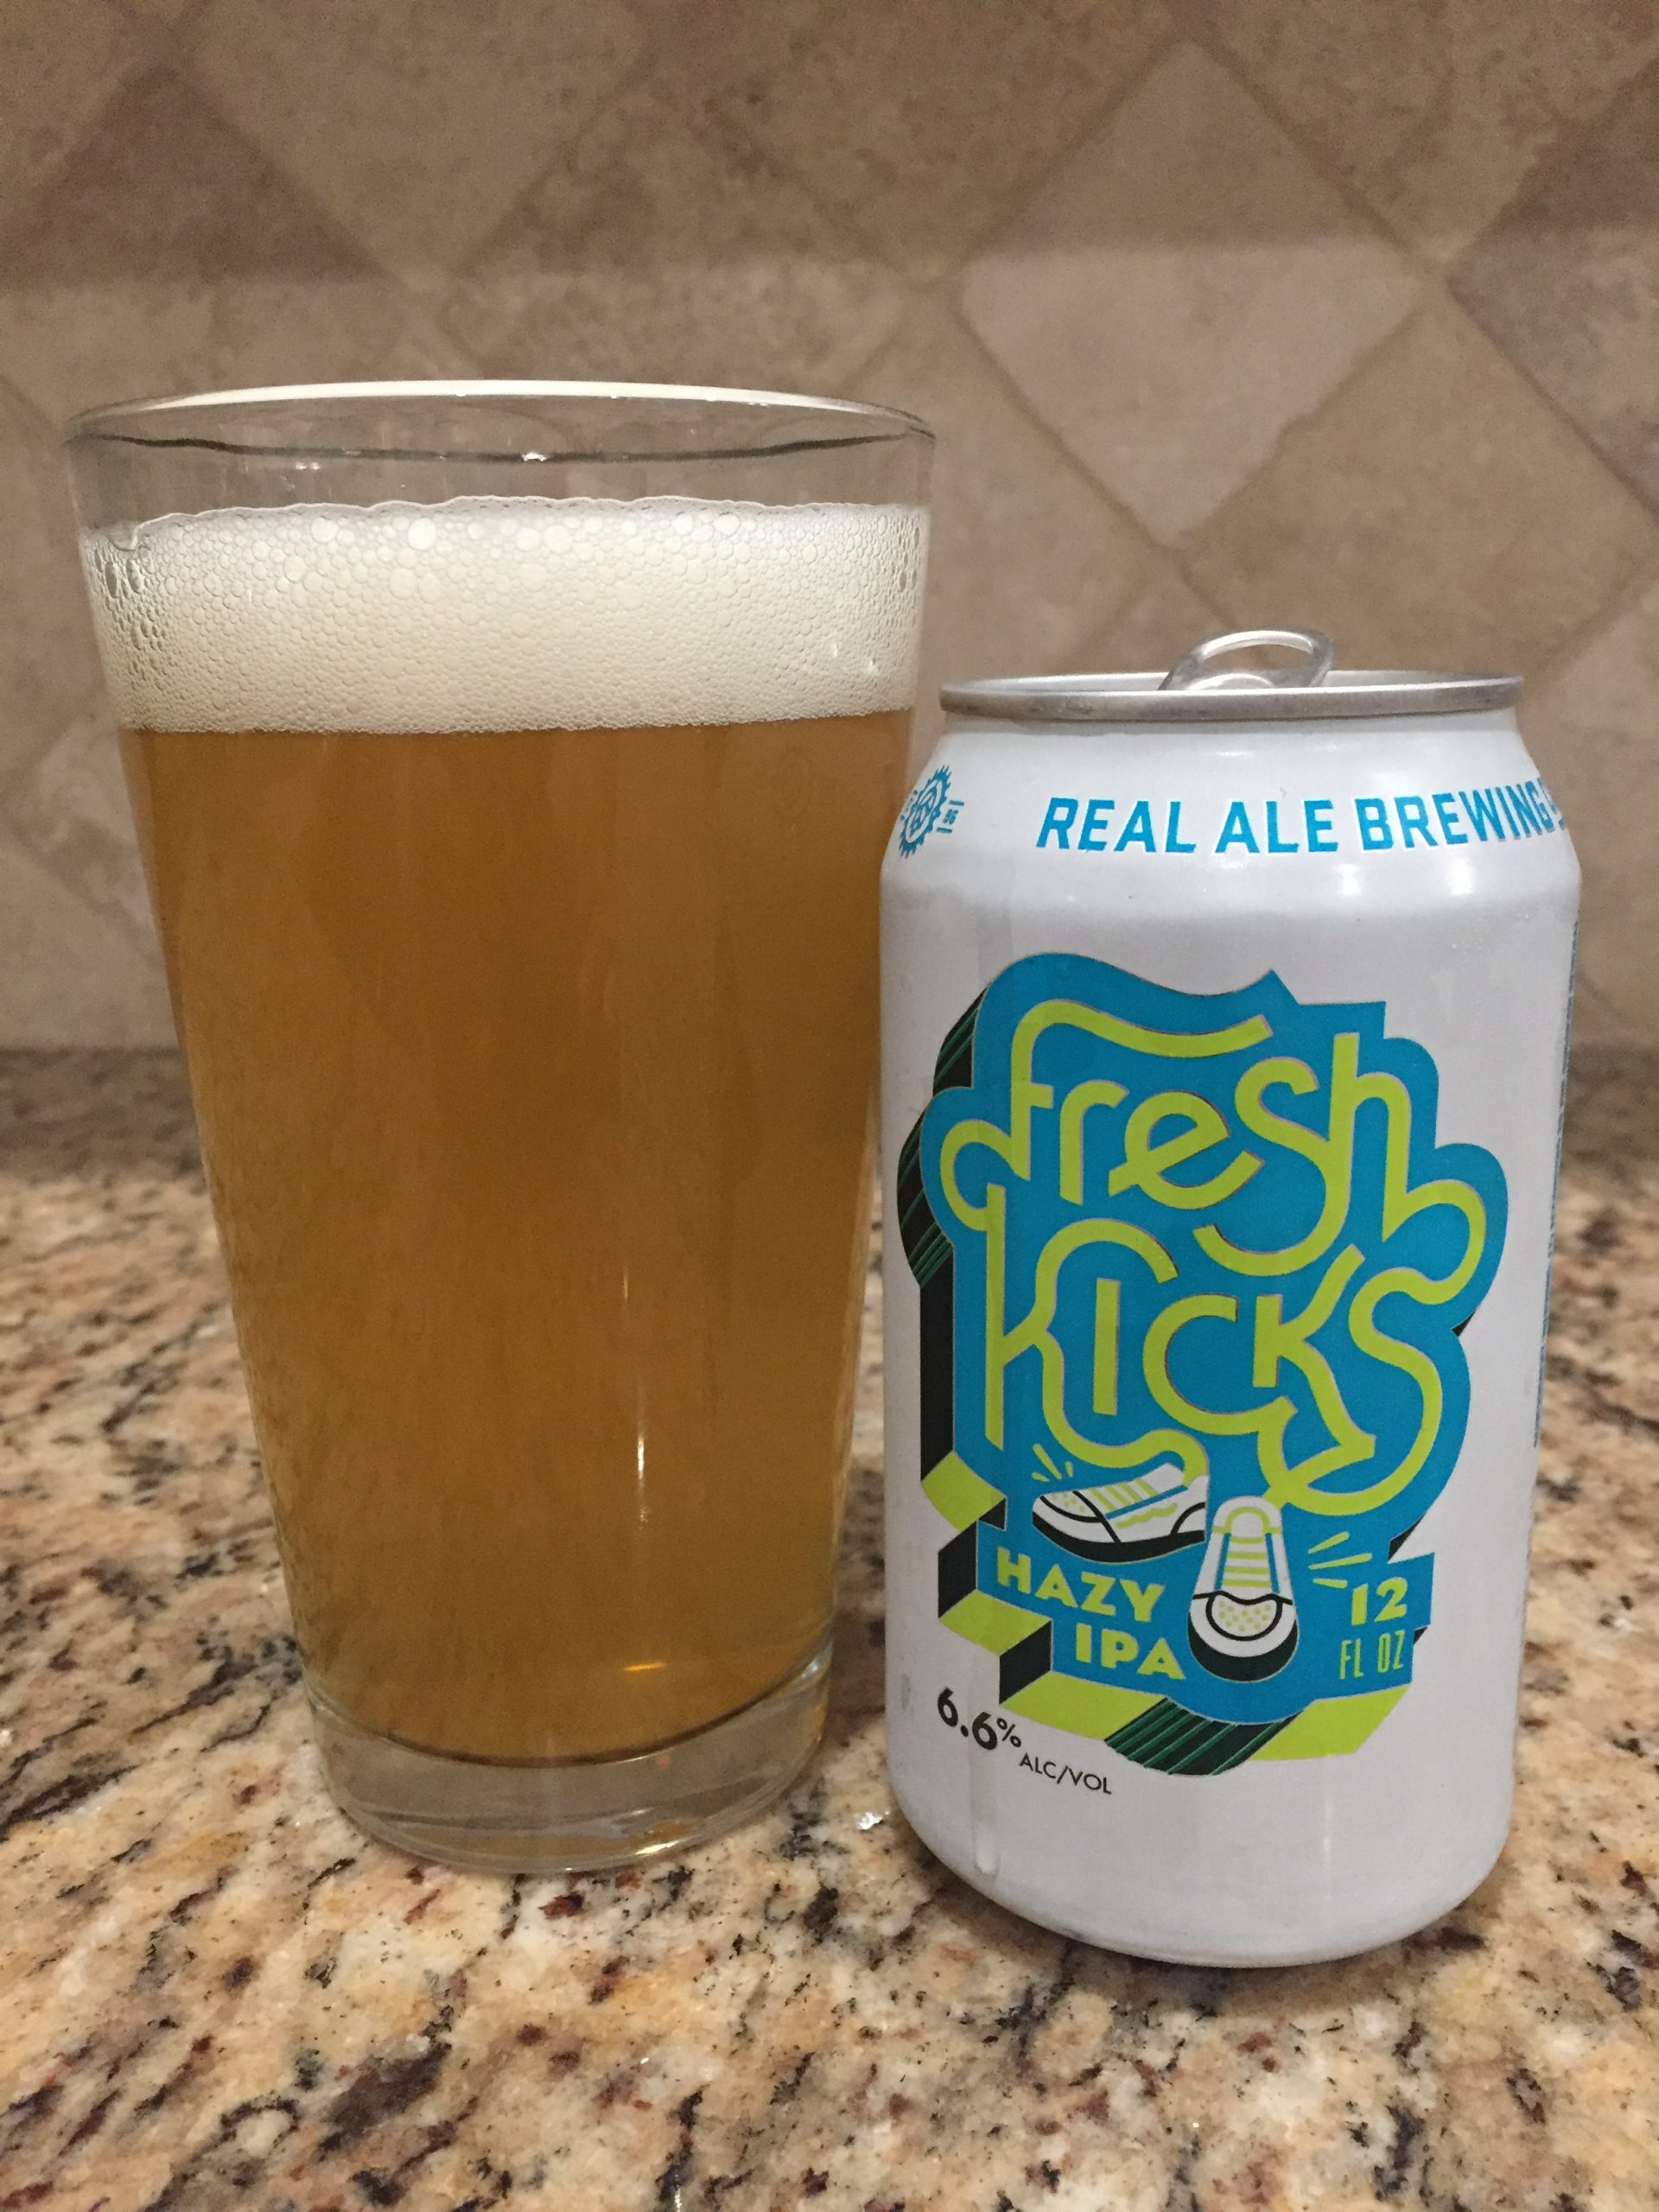 A white 10oz can with Fresh Kicks printed on it sitting next to a 12 oz pint glass of the Fresh kicks Hazy IPA